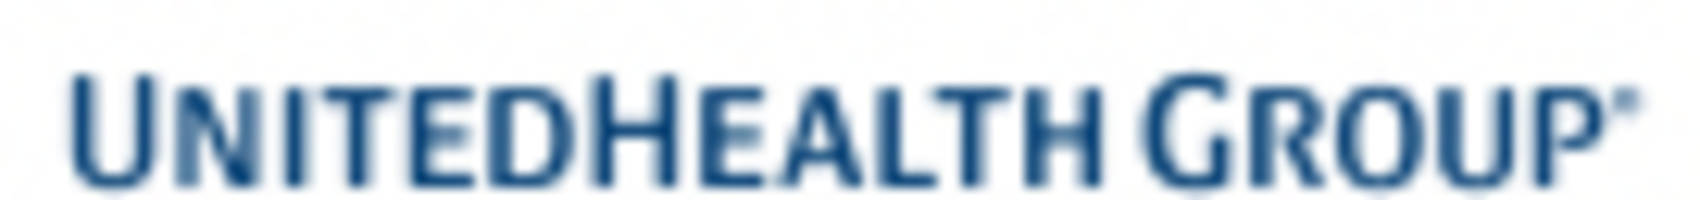 unitedhealth group schedules first quarter earnings release and conference call for april 18, 2017